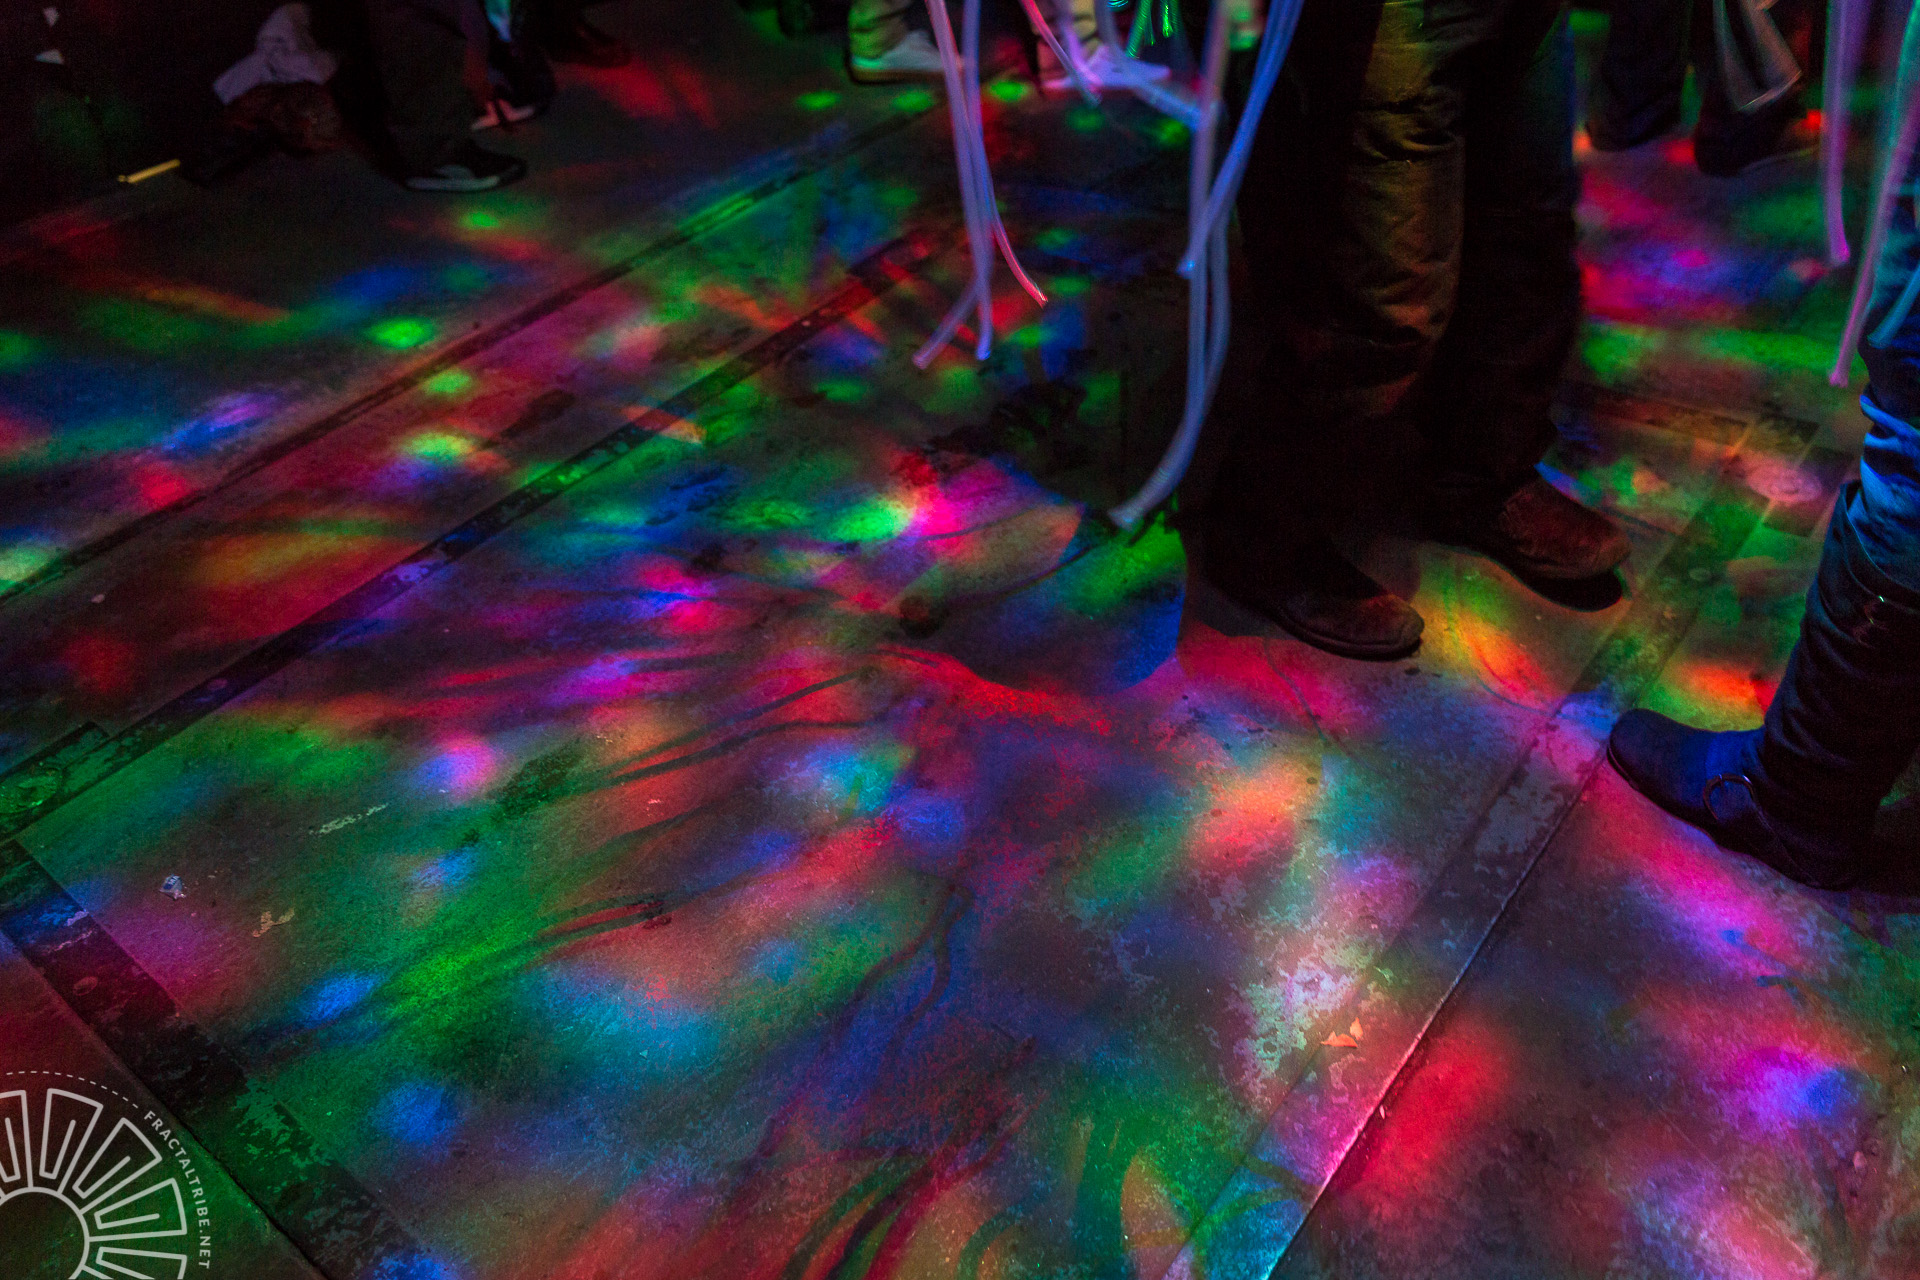 LED Jellyfish lighting on ground @ Fractaltribe's Year of the Fractilian NYE party 12/31/14 in Worcester, MA, USA